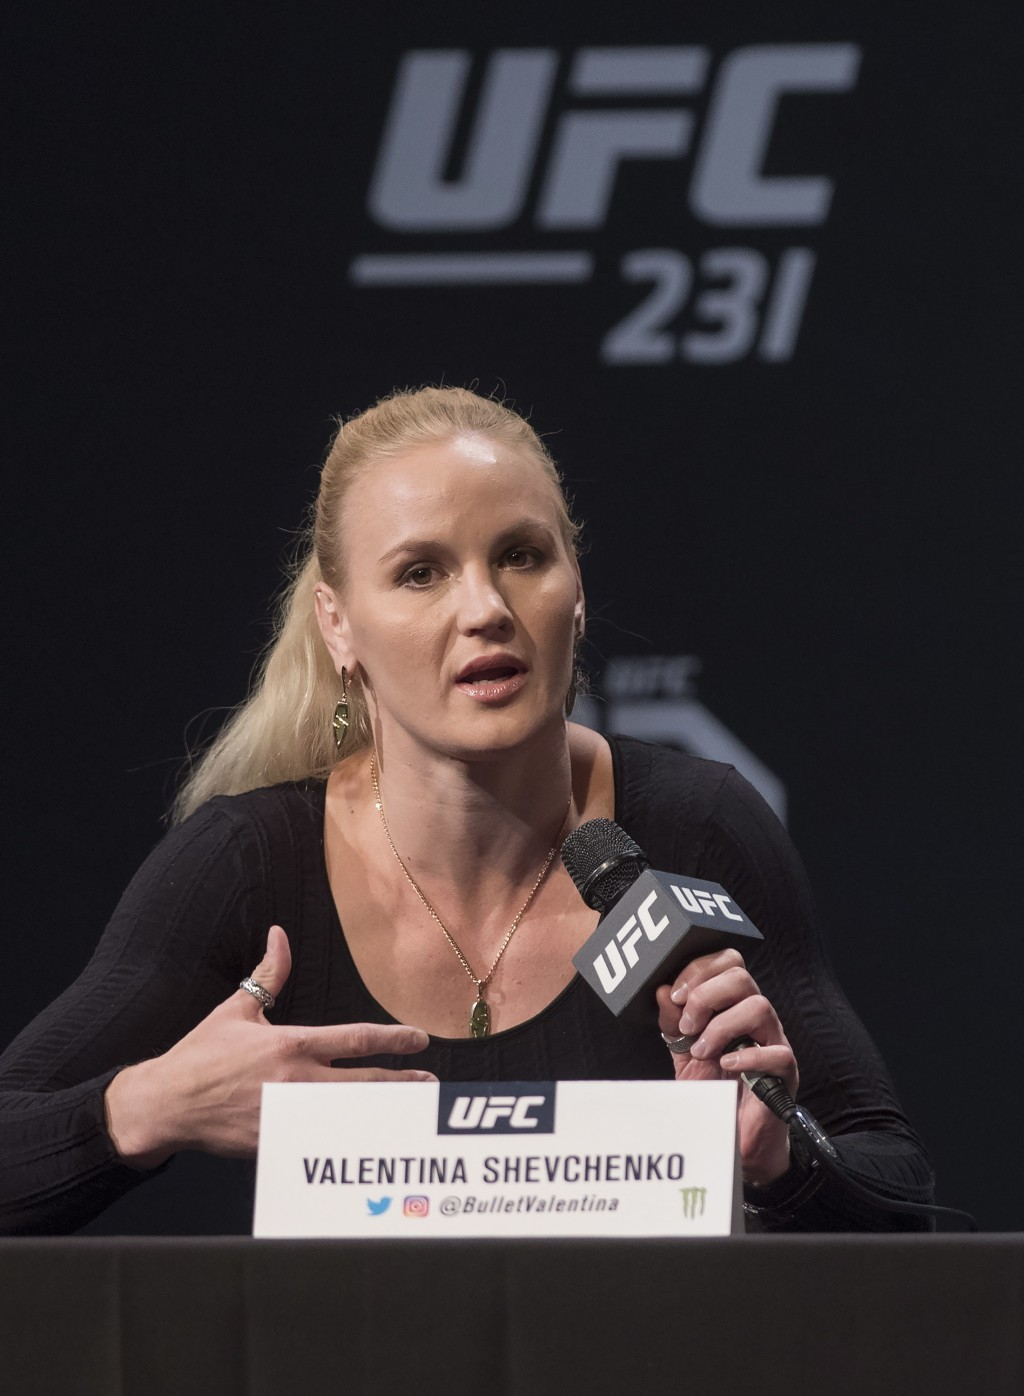 UFC featherweight Valentina Shevchenko speaks at a press conference, Wednesday, Dec. 5, 2018 in Toronto. UFC 231 takes place on Saturday, Dec. 8, 2018...